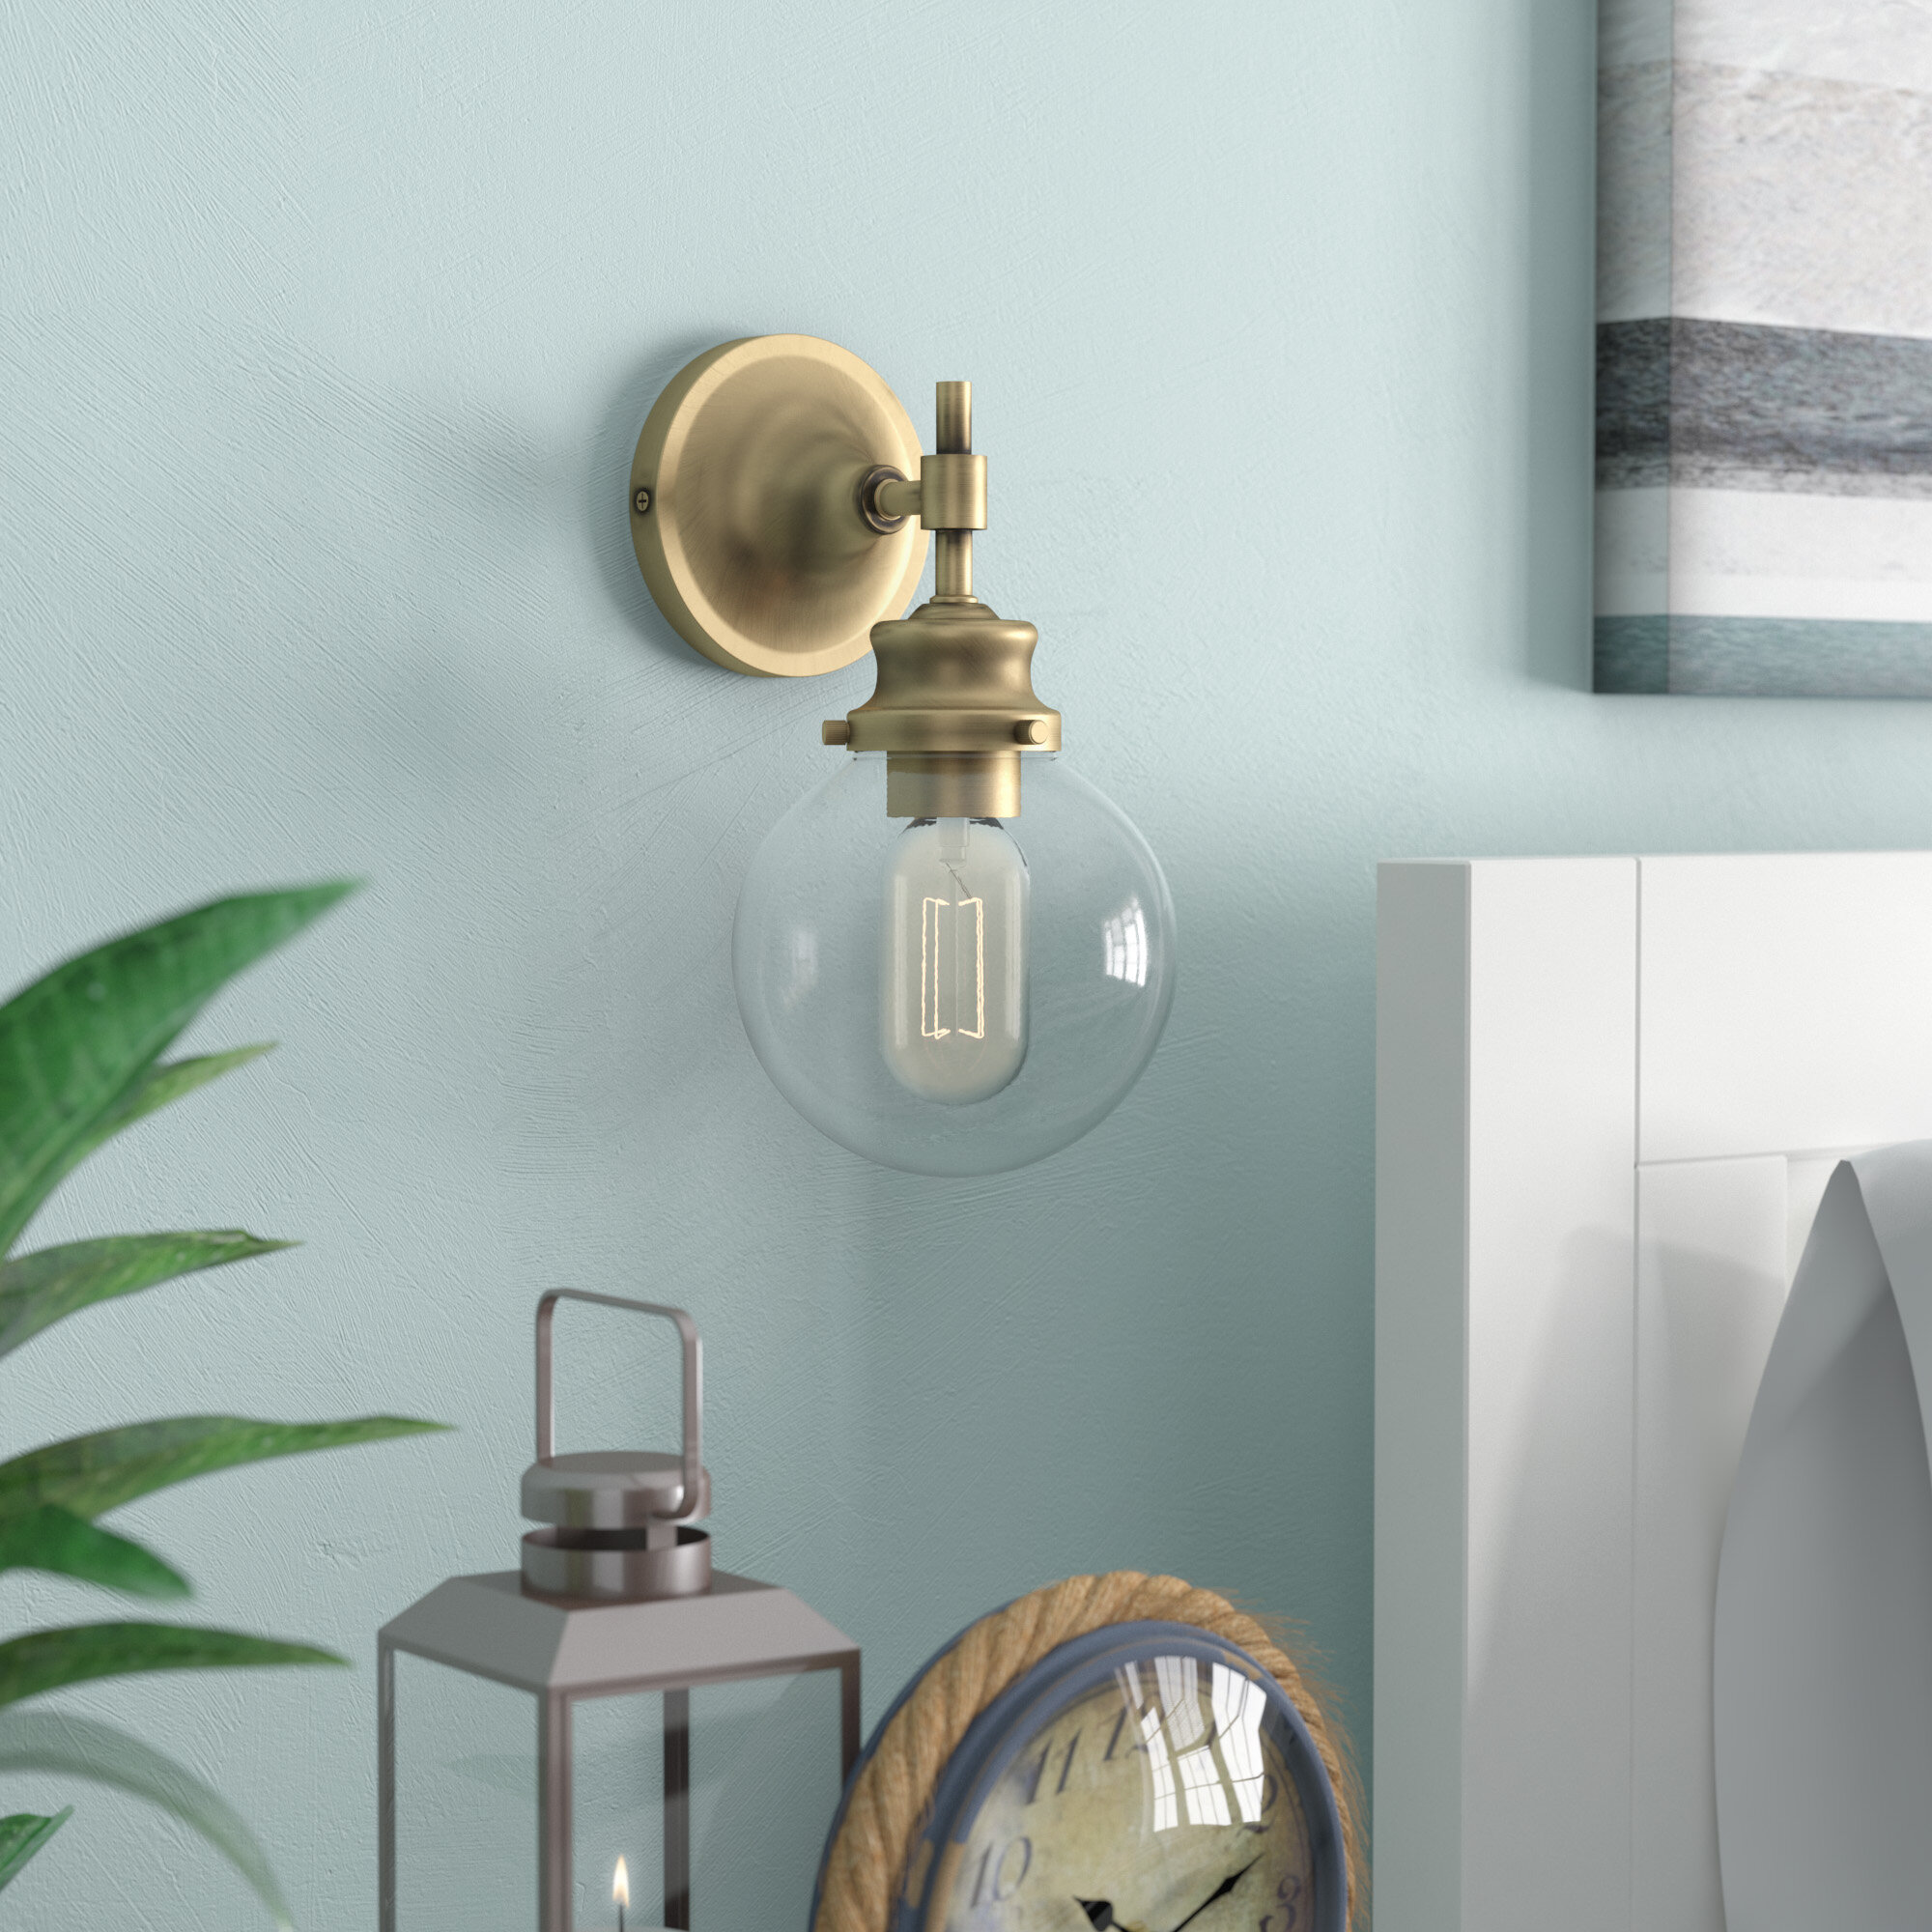 sconces kiven bell lighting vintage shopping glass cable iron bracket light one indoor outdoor wall decorative sconce online rustic lamps fixtures